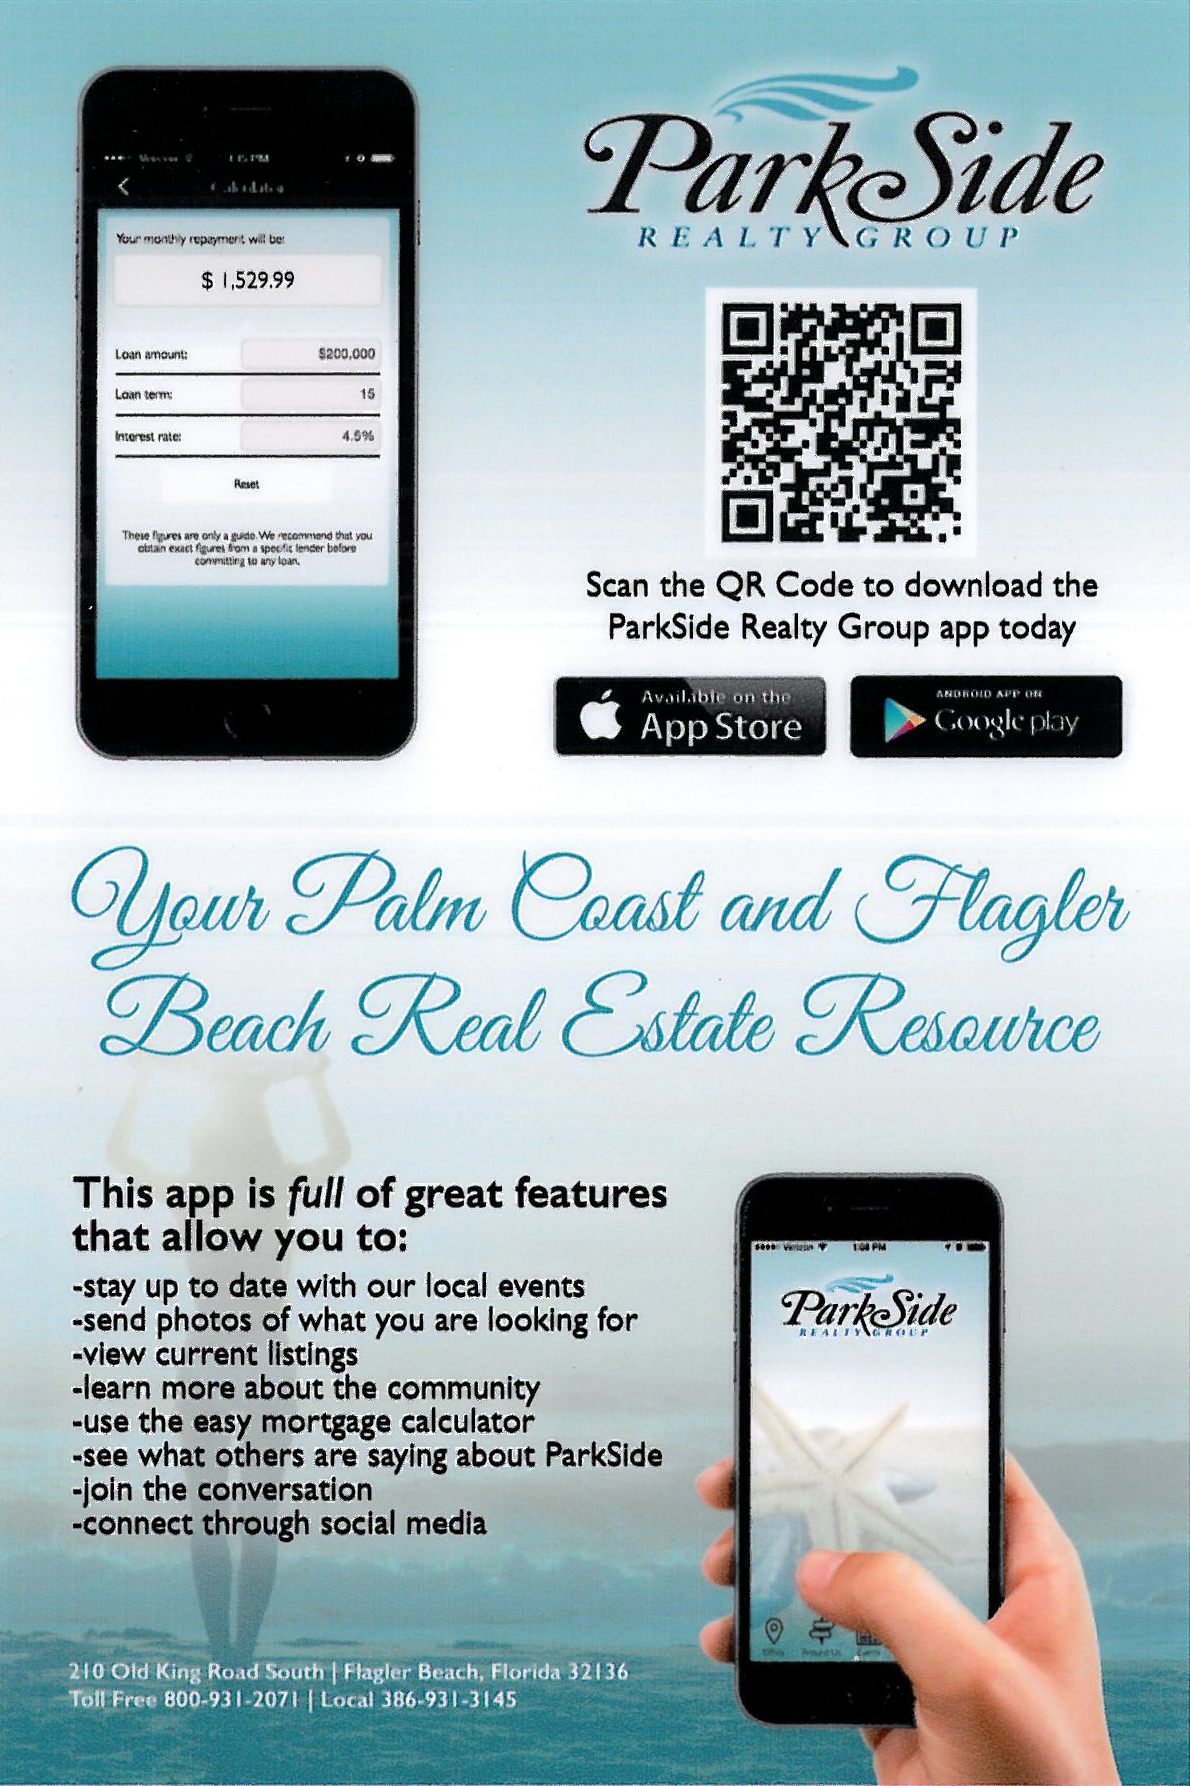 Contact Palm Coast REALTOR Diane And Kevin Orak With The